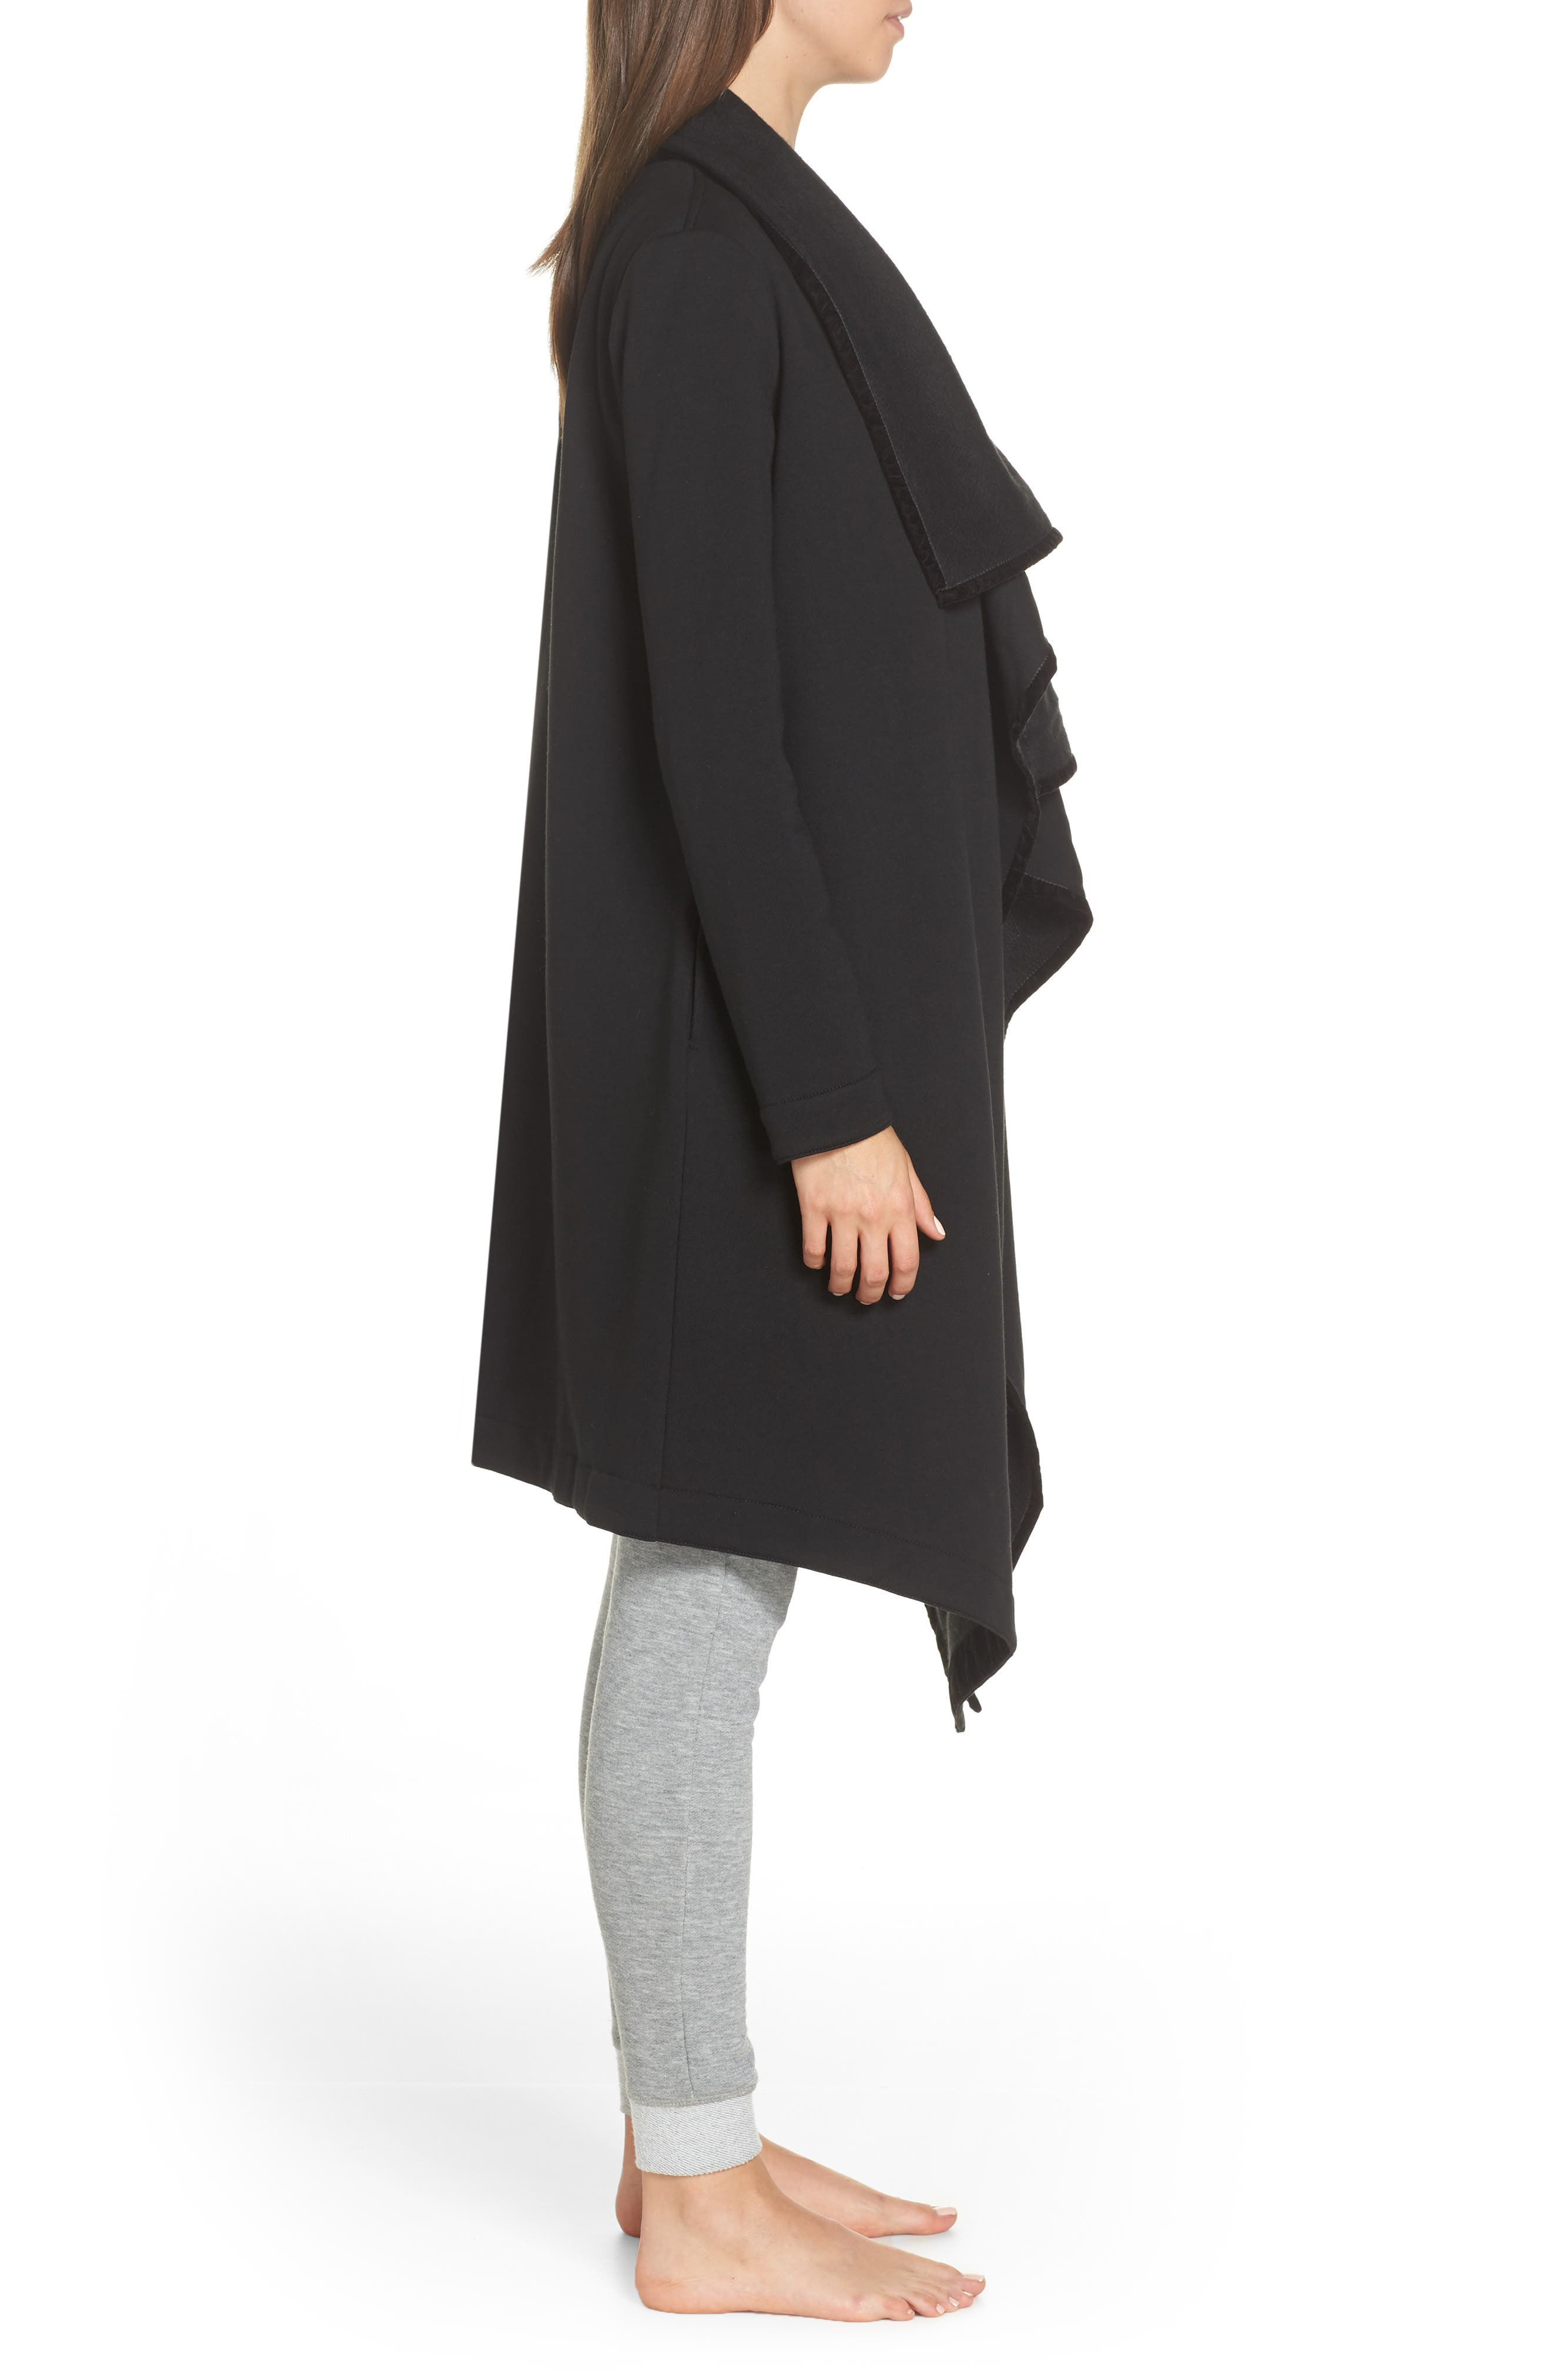 Janni Fleece Cardigan,                             Alternate thumbnail 3, color,                             BLACK